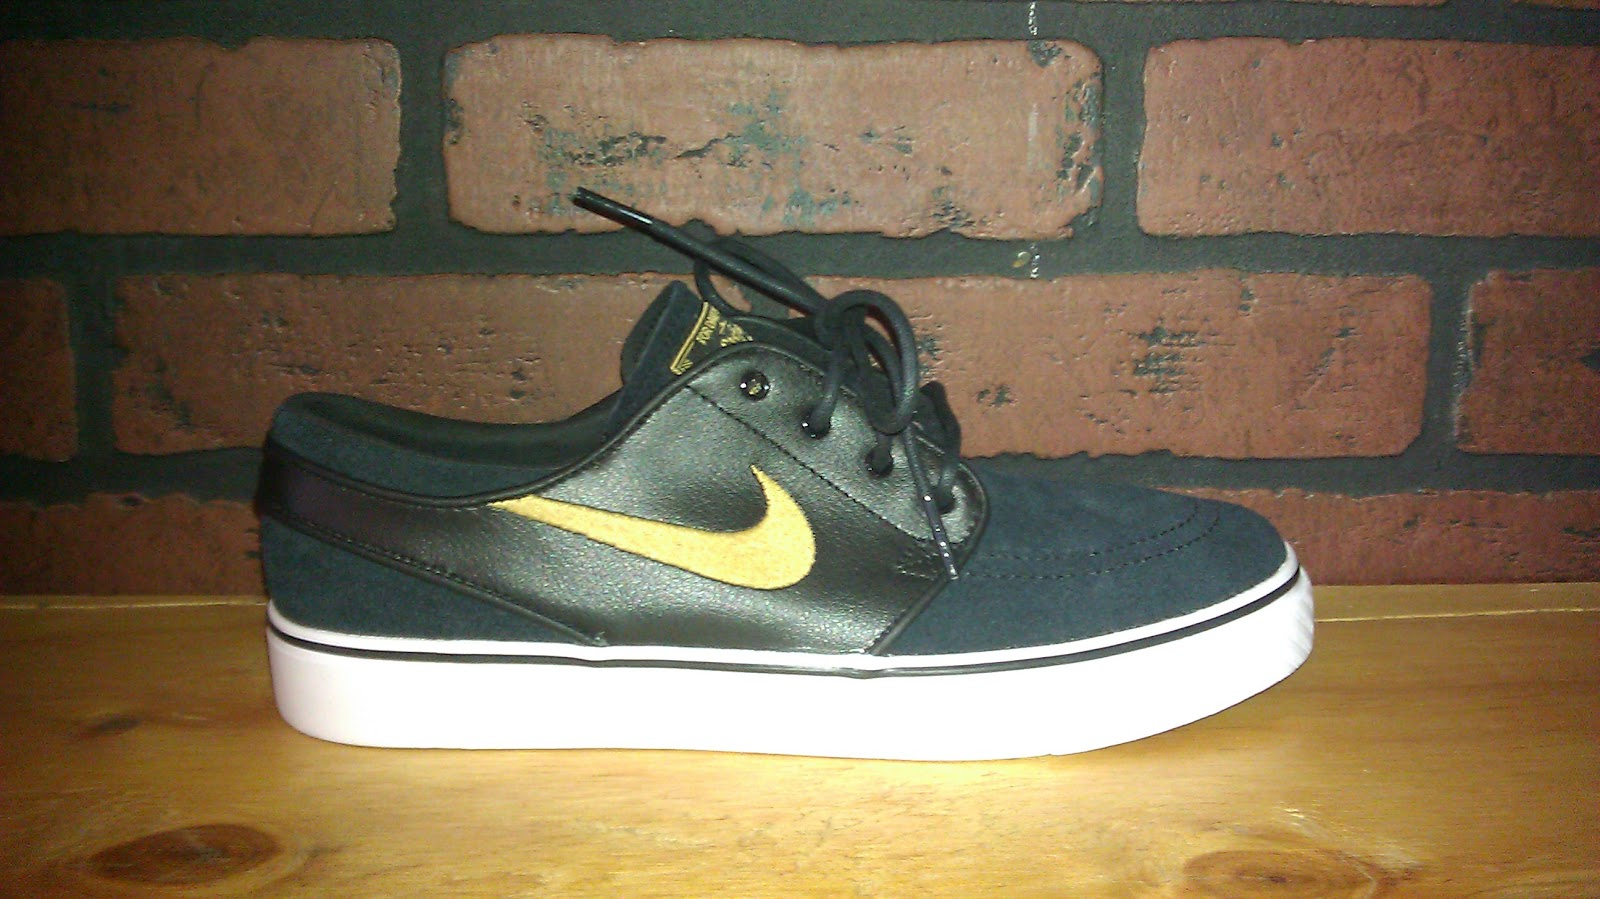 low priced ec481 7da03 NIKE SB MAY 2012 RELEASES. PAUL RODRIGUEZ 5 MID SB BLACK MINT  100. ZOOM  STEFAN JANOSKI MID SB BLACK GREEN  85